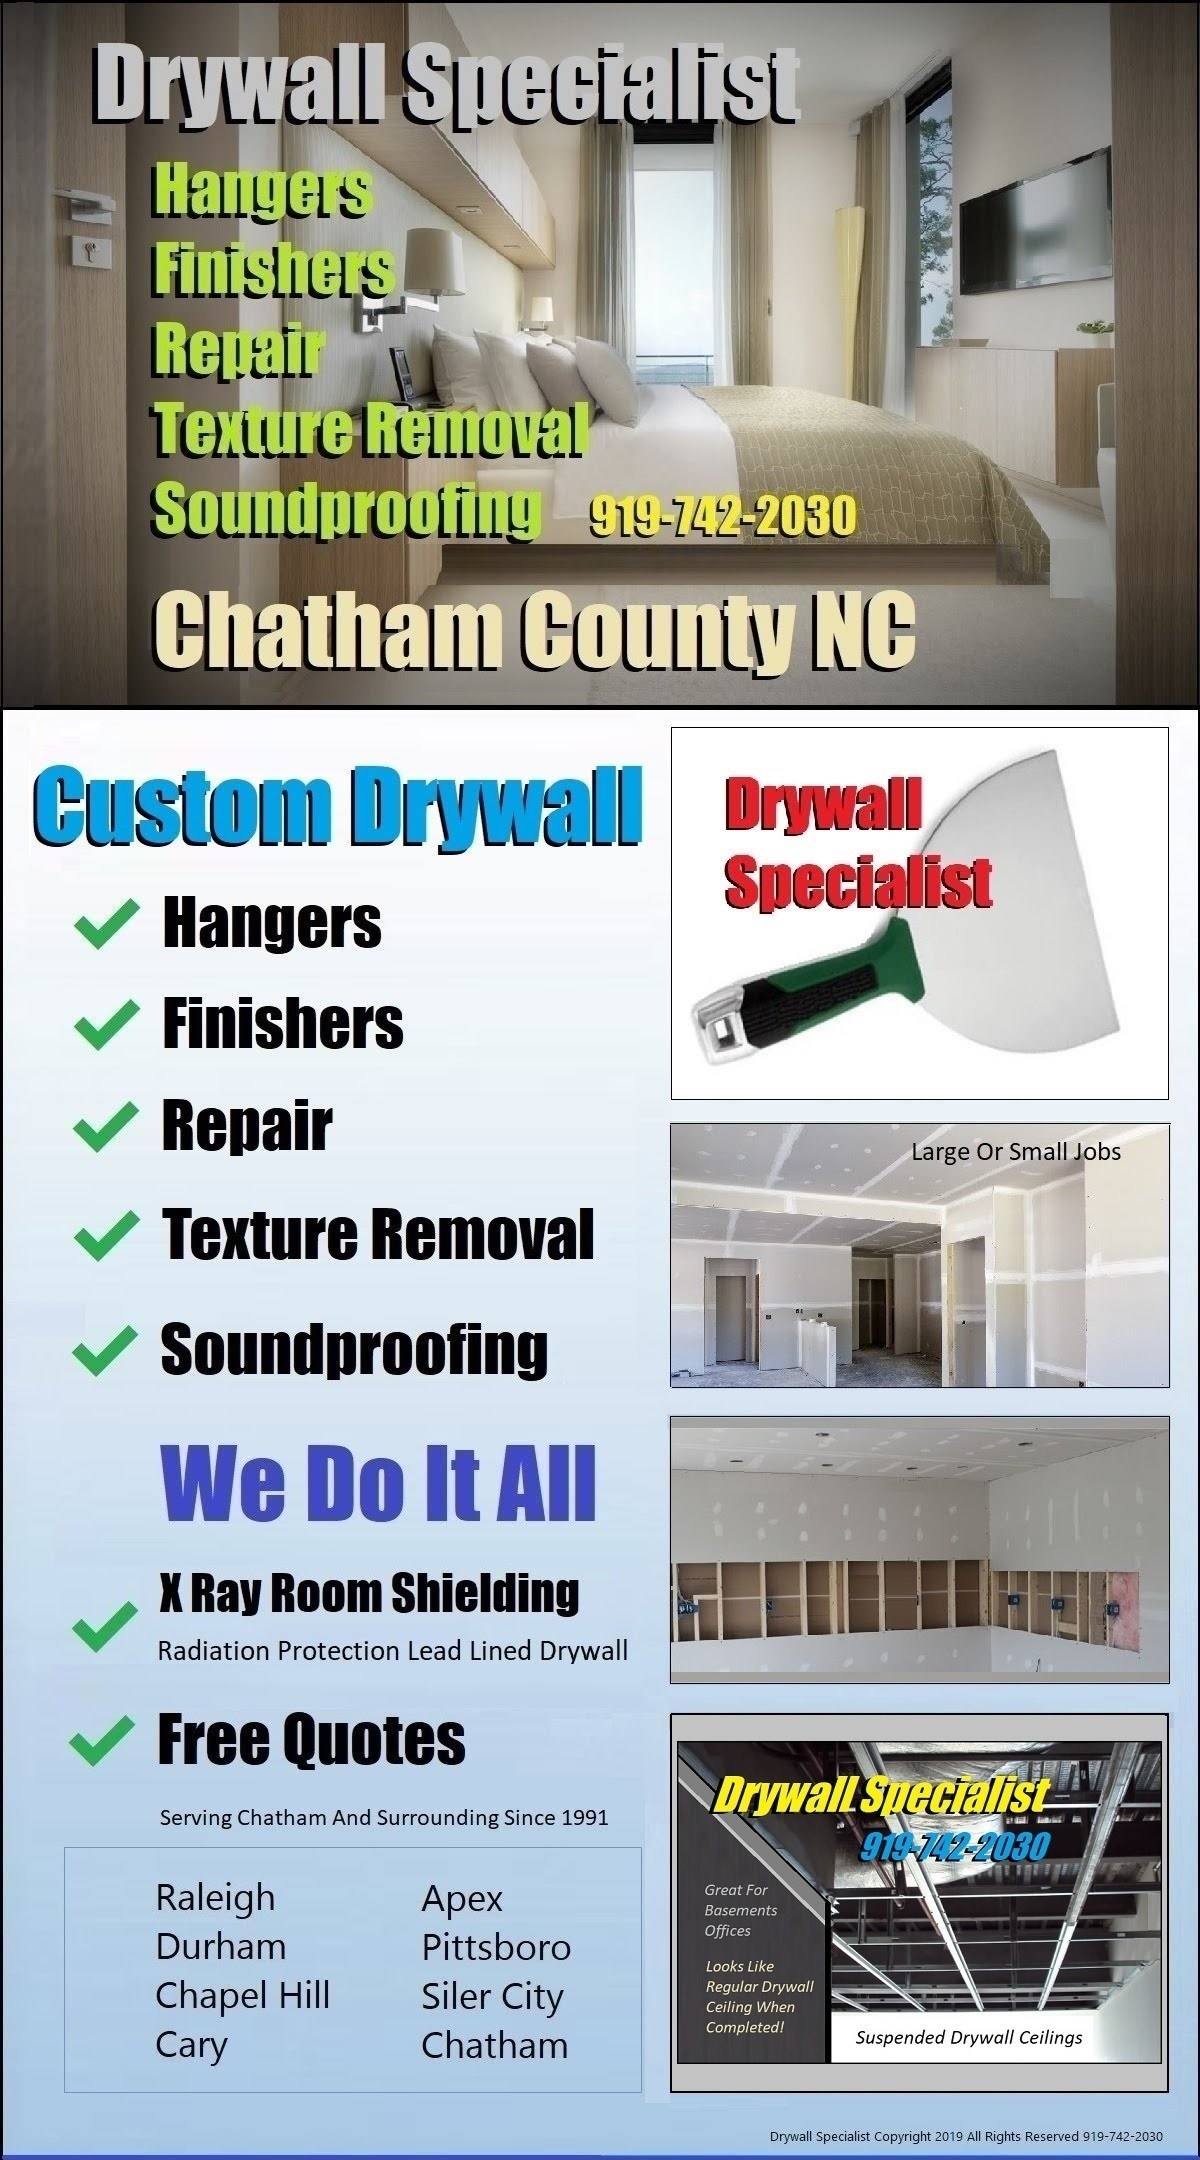 Nextdoor Wallboard Hanger Finisher Repair And Popcorn Texture Removal Soundproofing Contractor | Durham NC